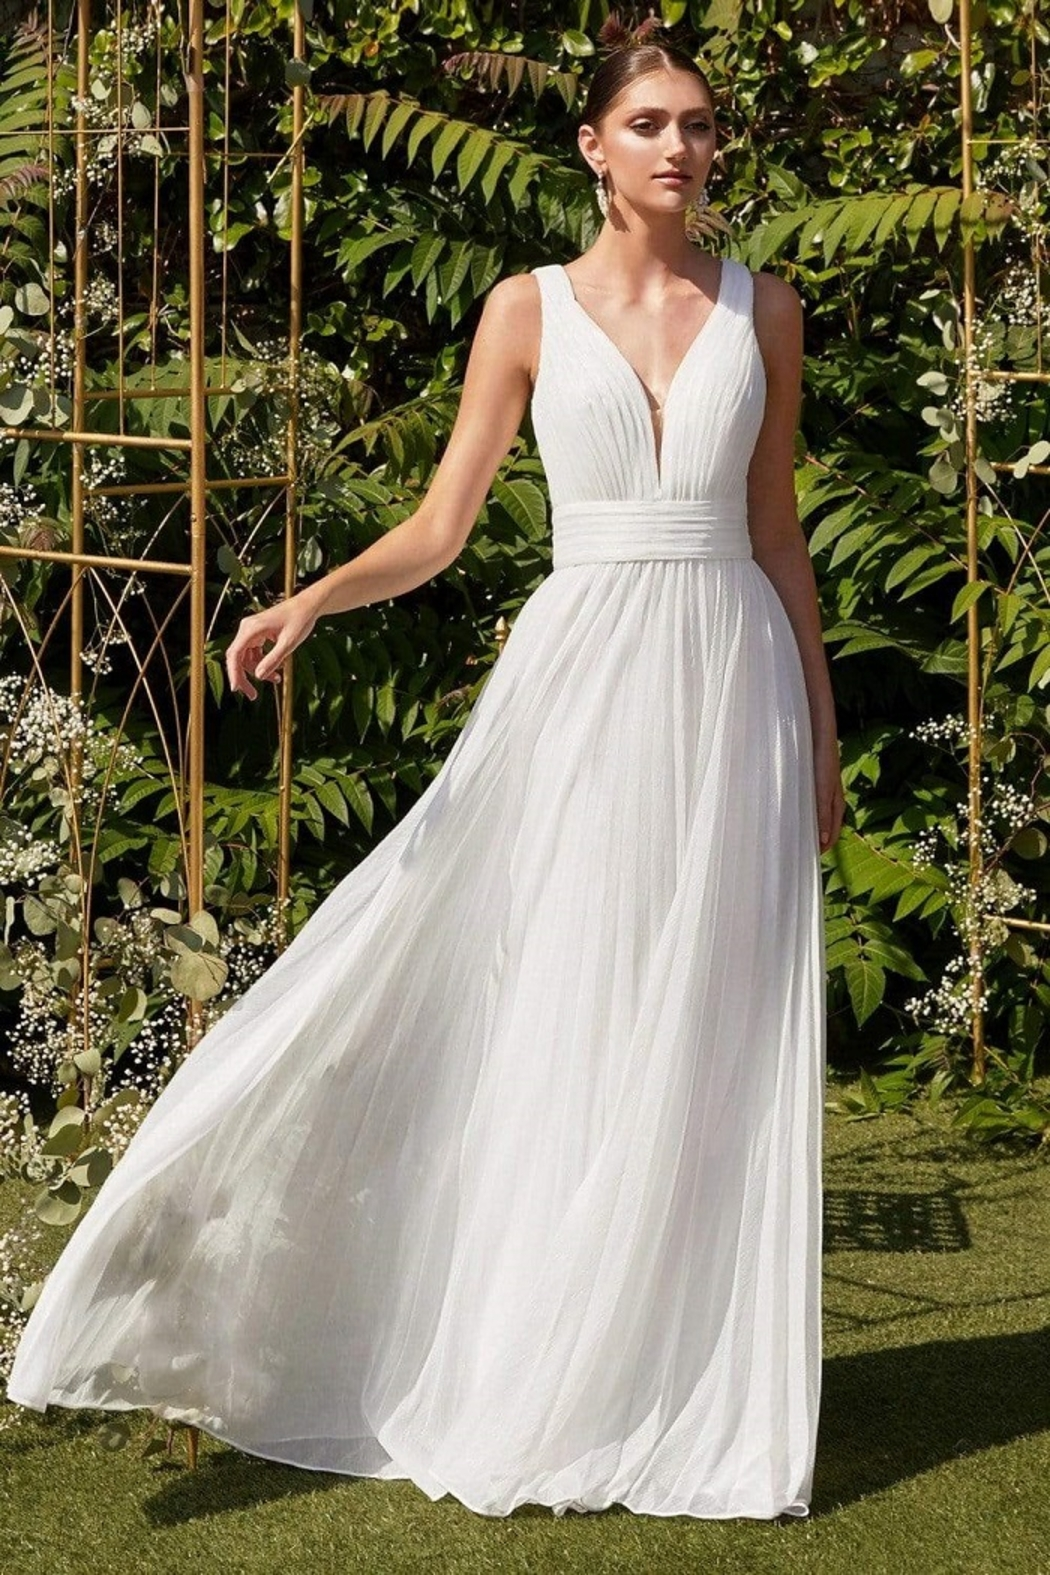 Cinderella Divine Off White Metallic A-Line Bridal Gown - Main Image